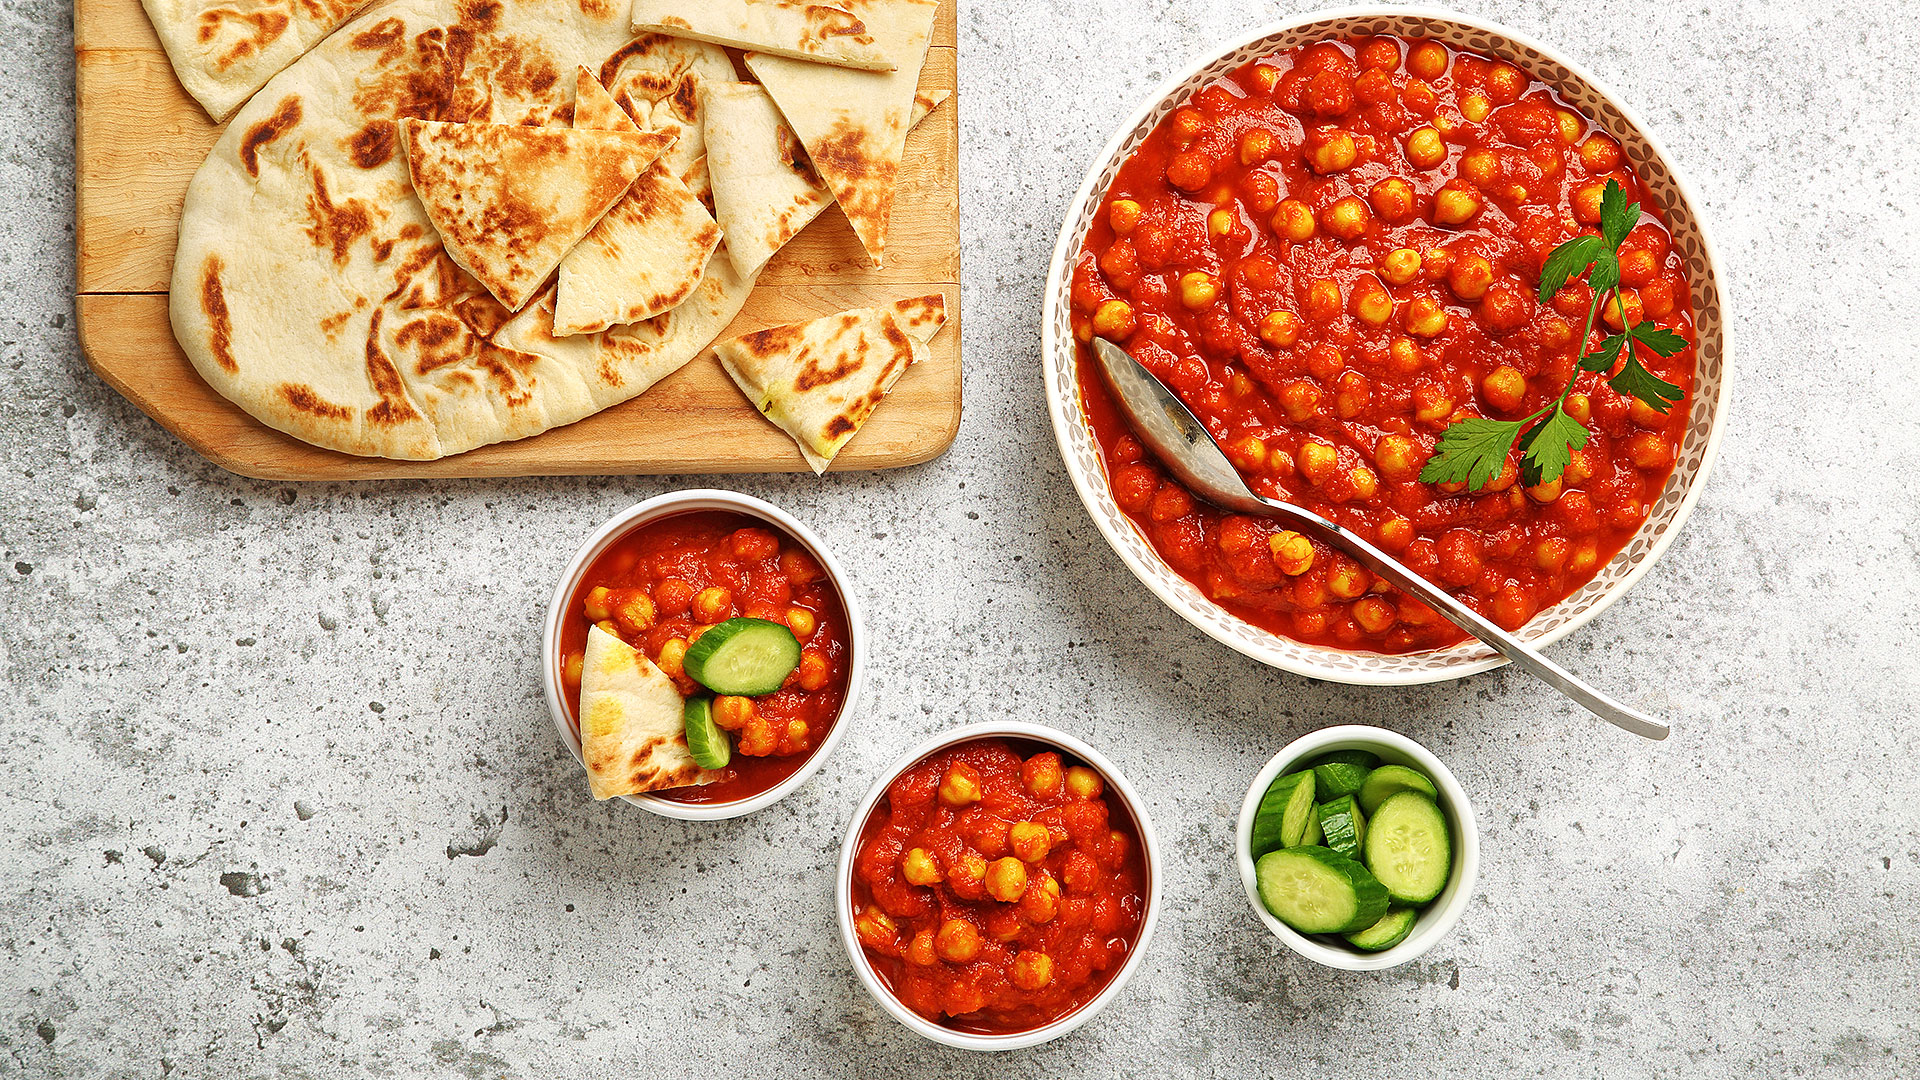 Garlic tomato chickpeas in a big serving bowl with naan on a wooden cutting board and cucumber slices in a small bowl on the side.